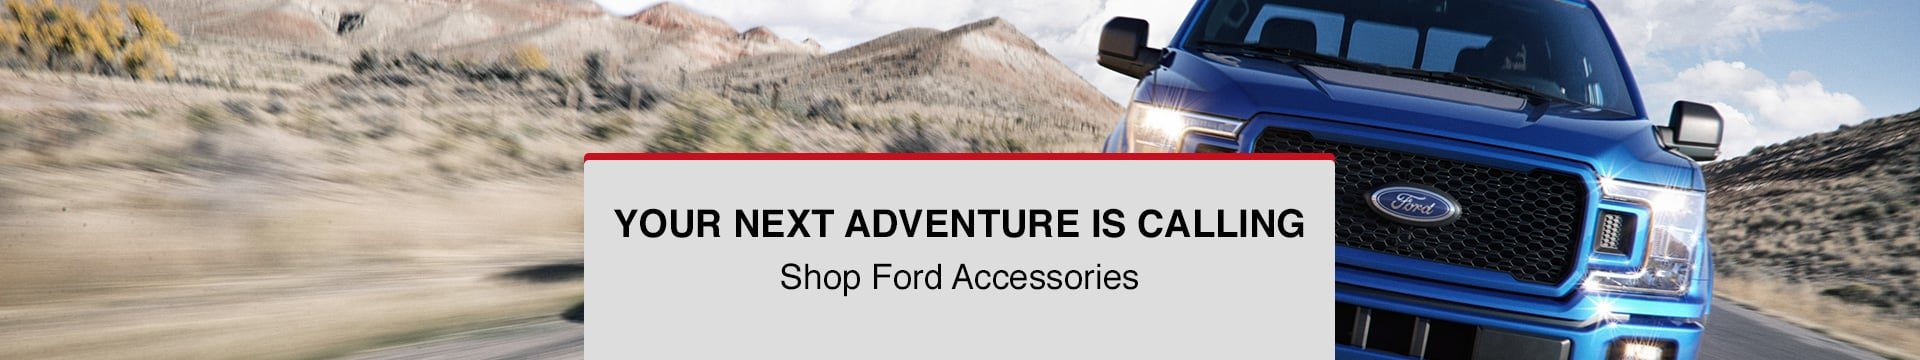 Ford Accessories